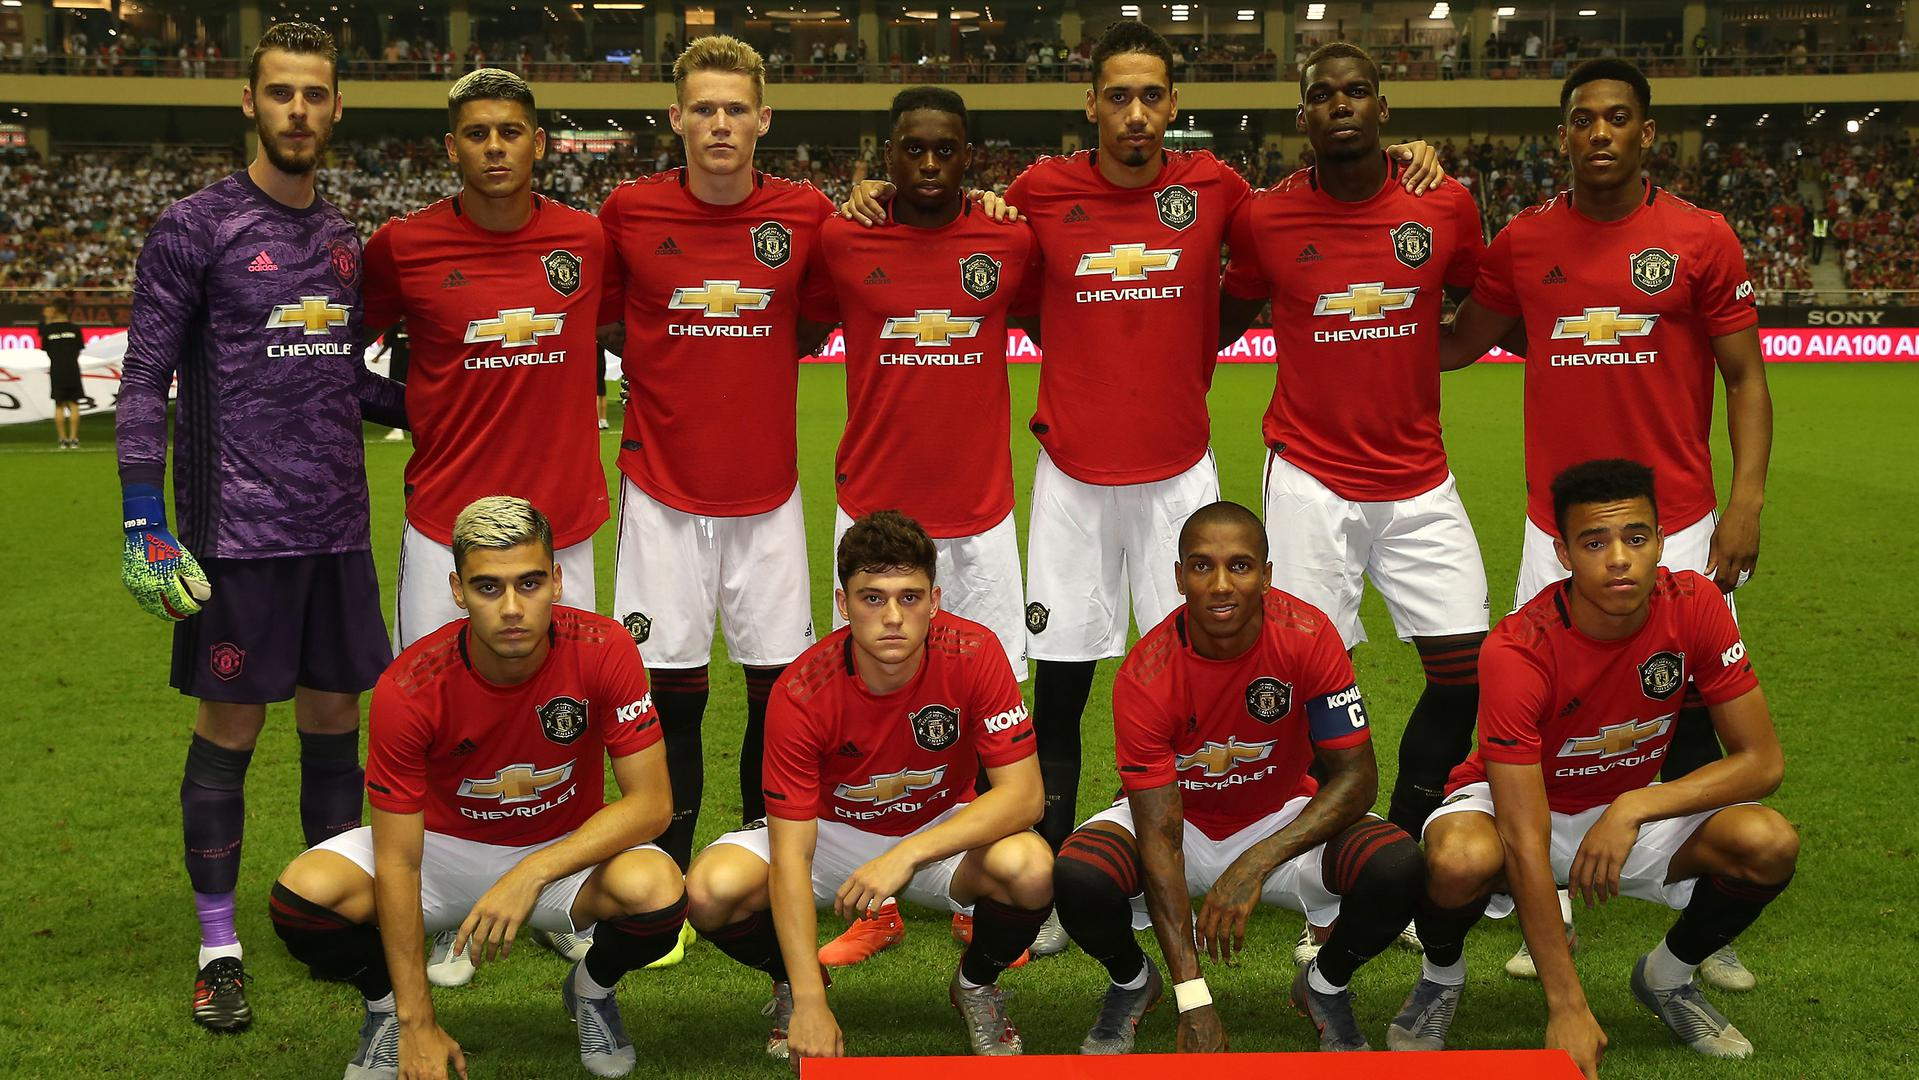 man utd announce squad numbers for 2019 20 premier league season manchester united https www manutd com en news detail man utd squad numbers announced for 2019 20 season